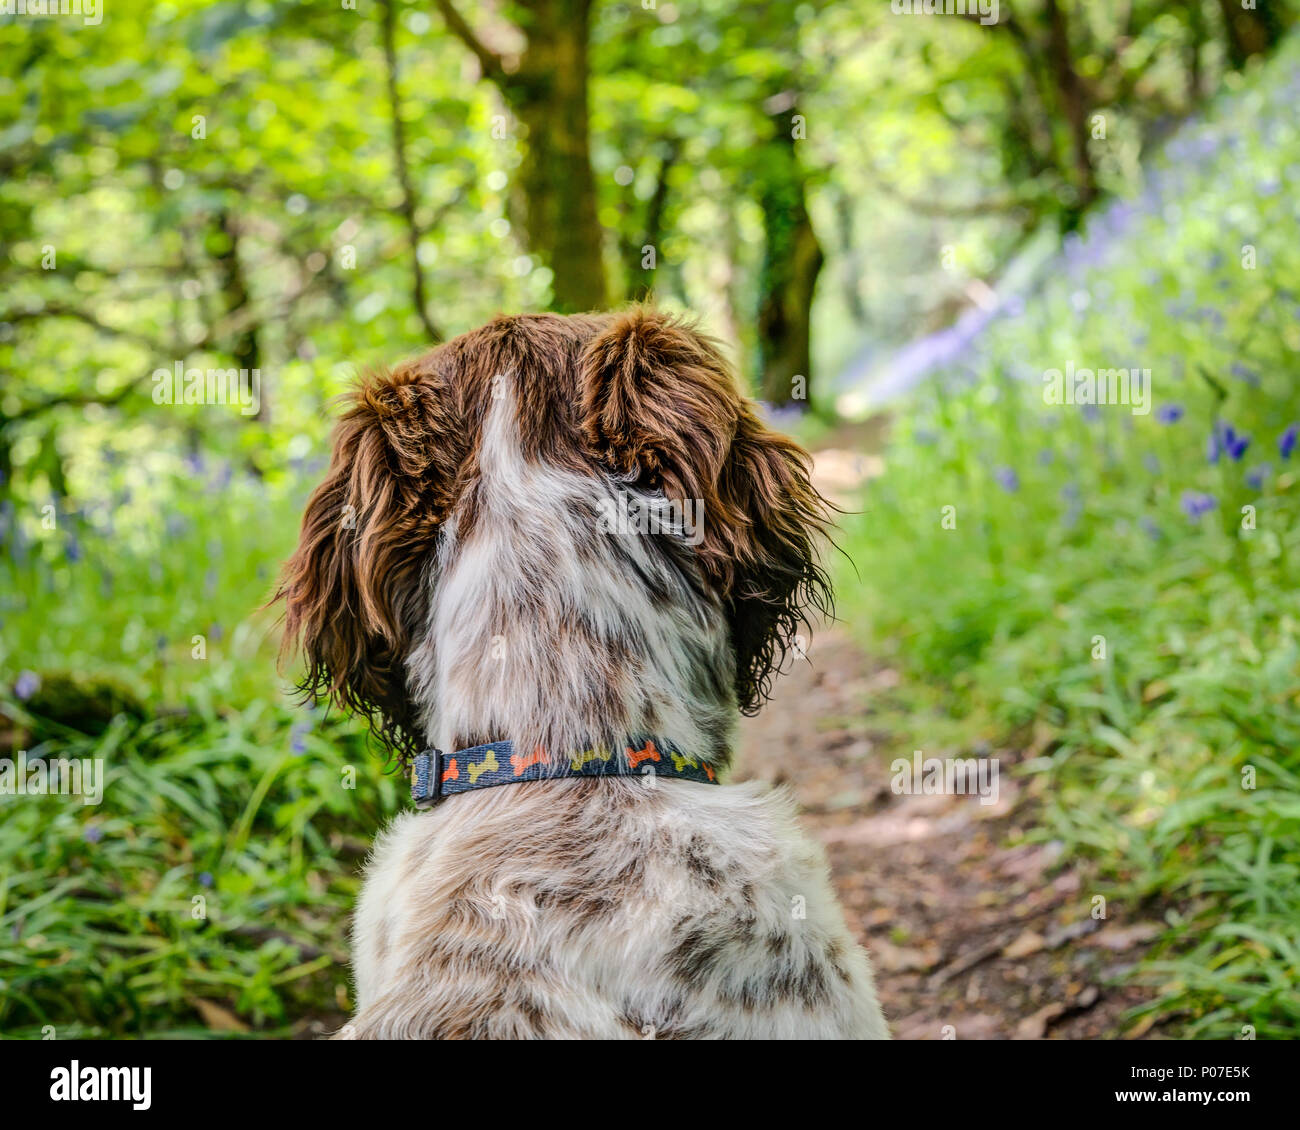 A female puppy, liver brown and white cross breed Sprocker Spaniel, Ruby is studying the bluebell wood and the magic of the forest that lies ahead. - Stock Image